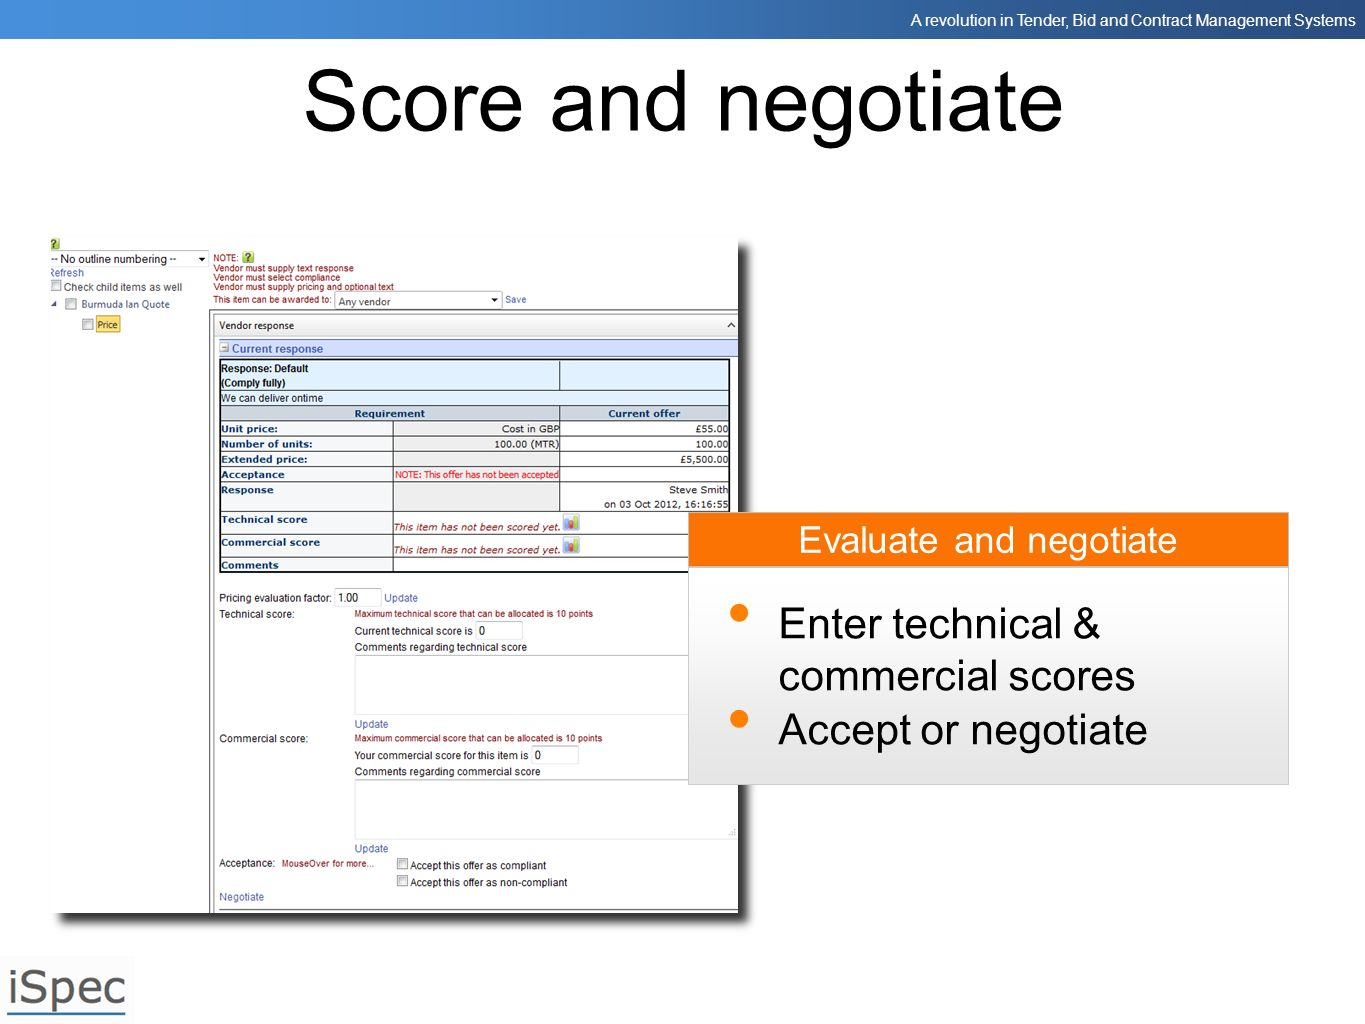 Evaluate and negotiate